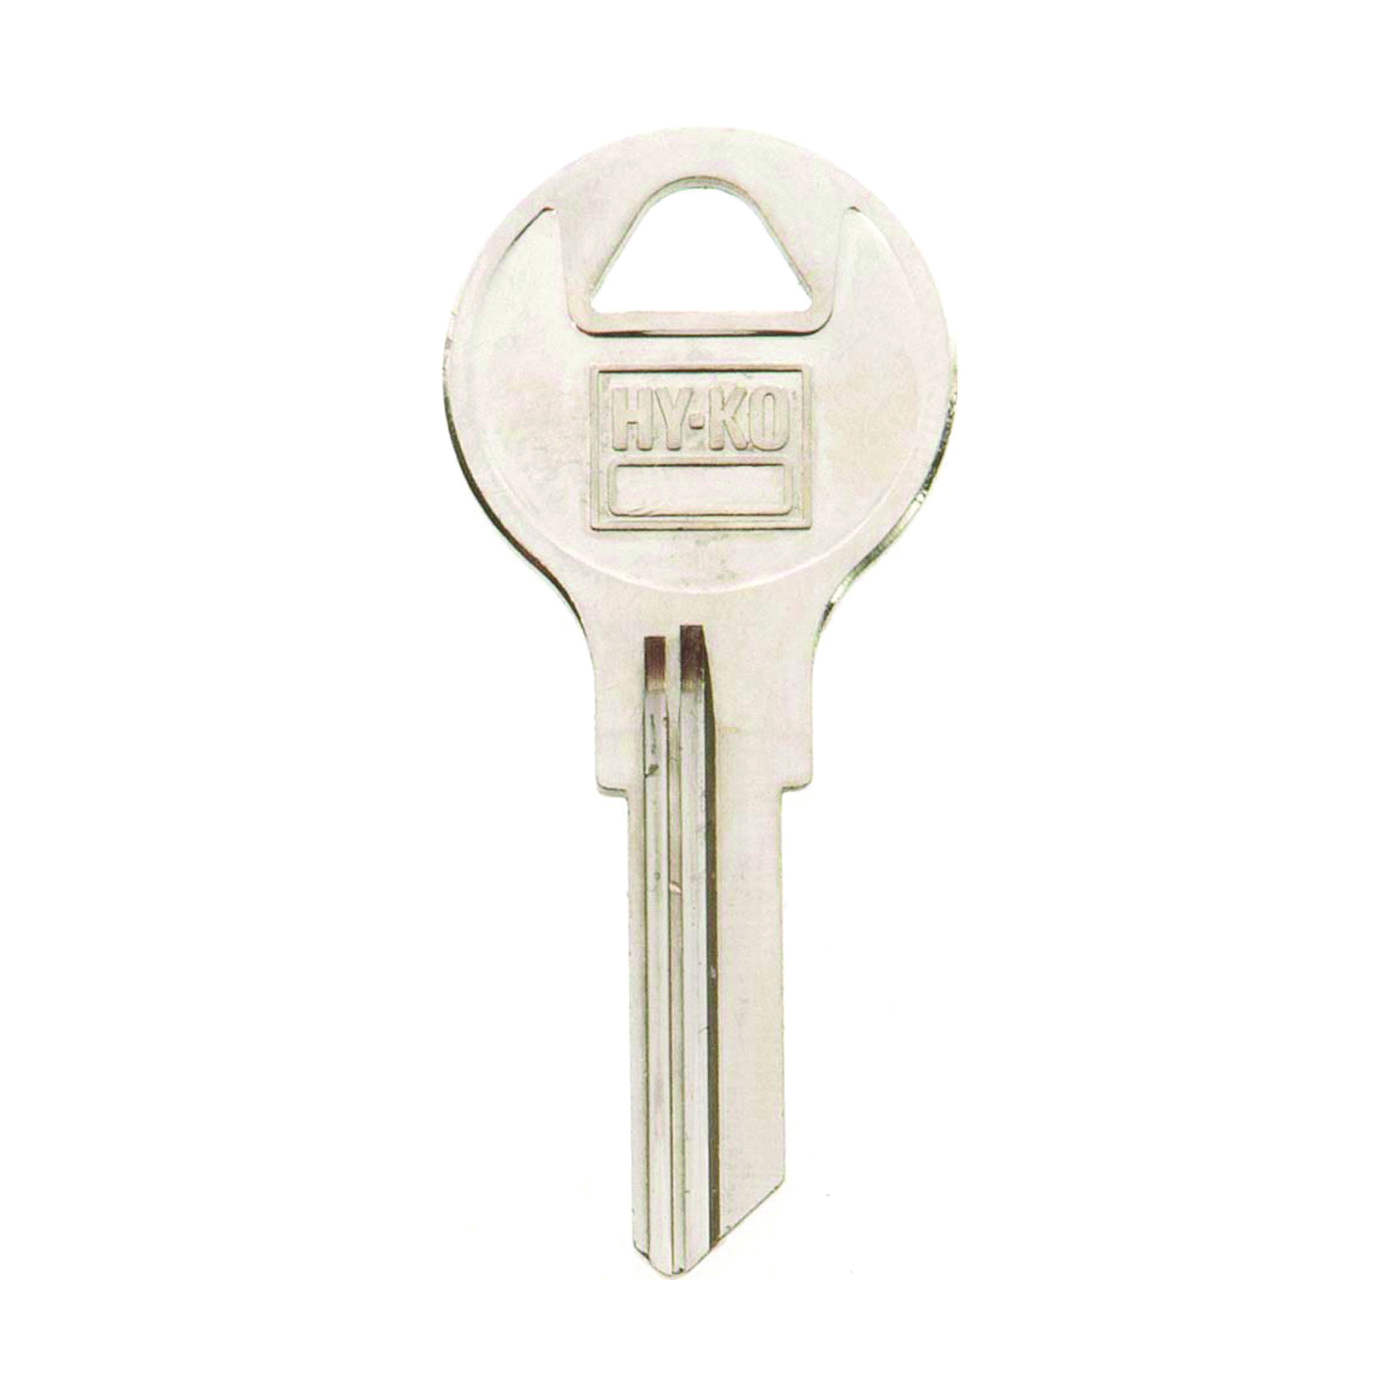 Picture of HY-KO 11010AP2 Key Blank, Brass, Nickel, For: Chicago Cabinet, House Locks and Padlocks